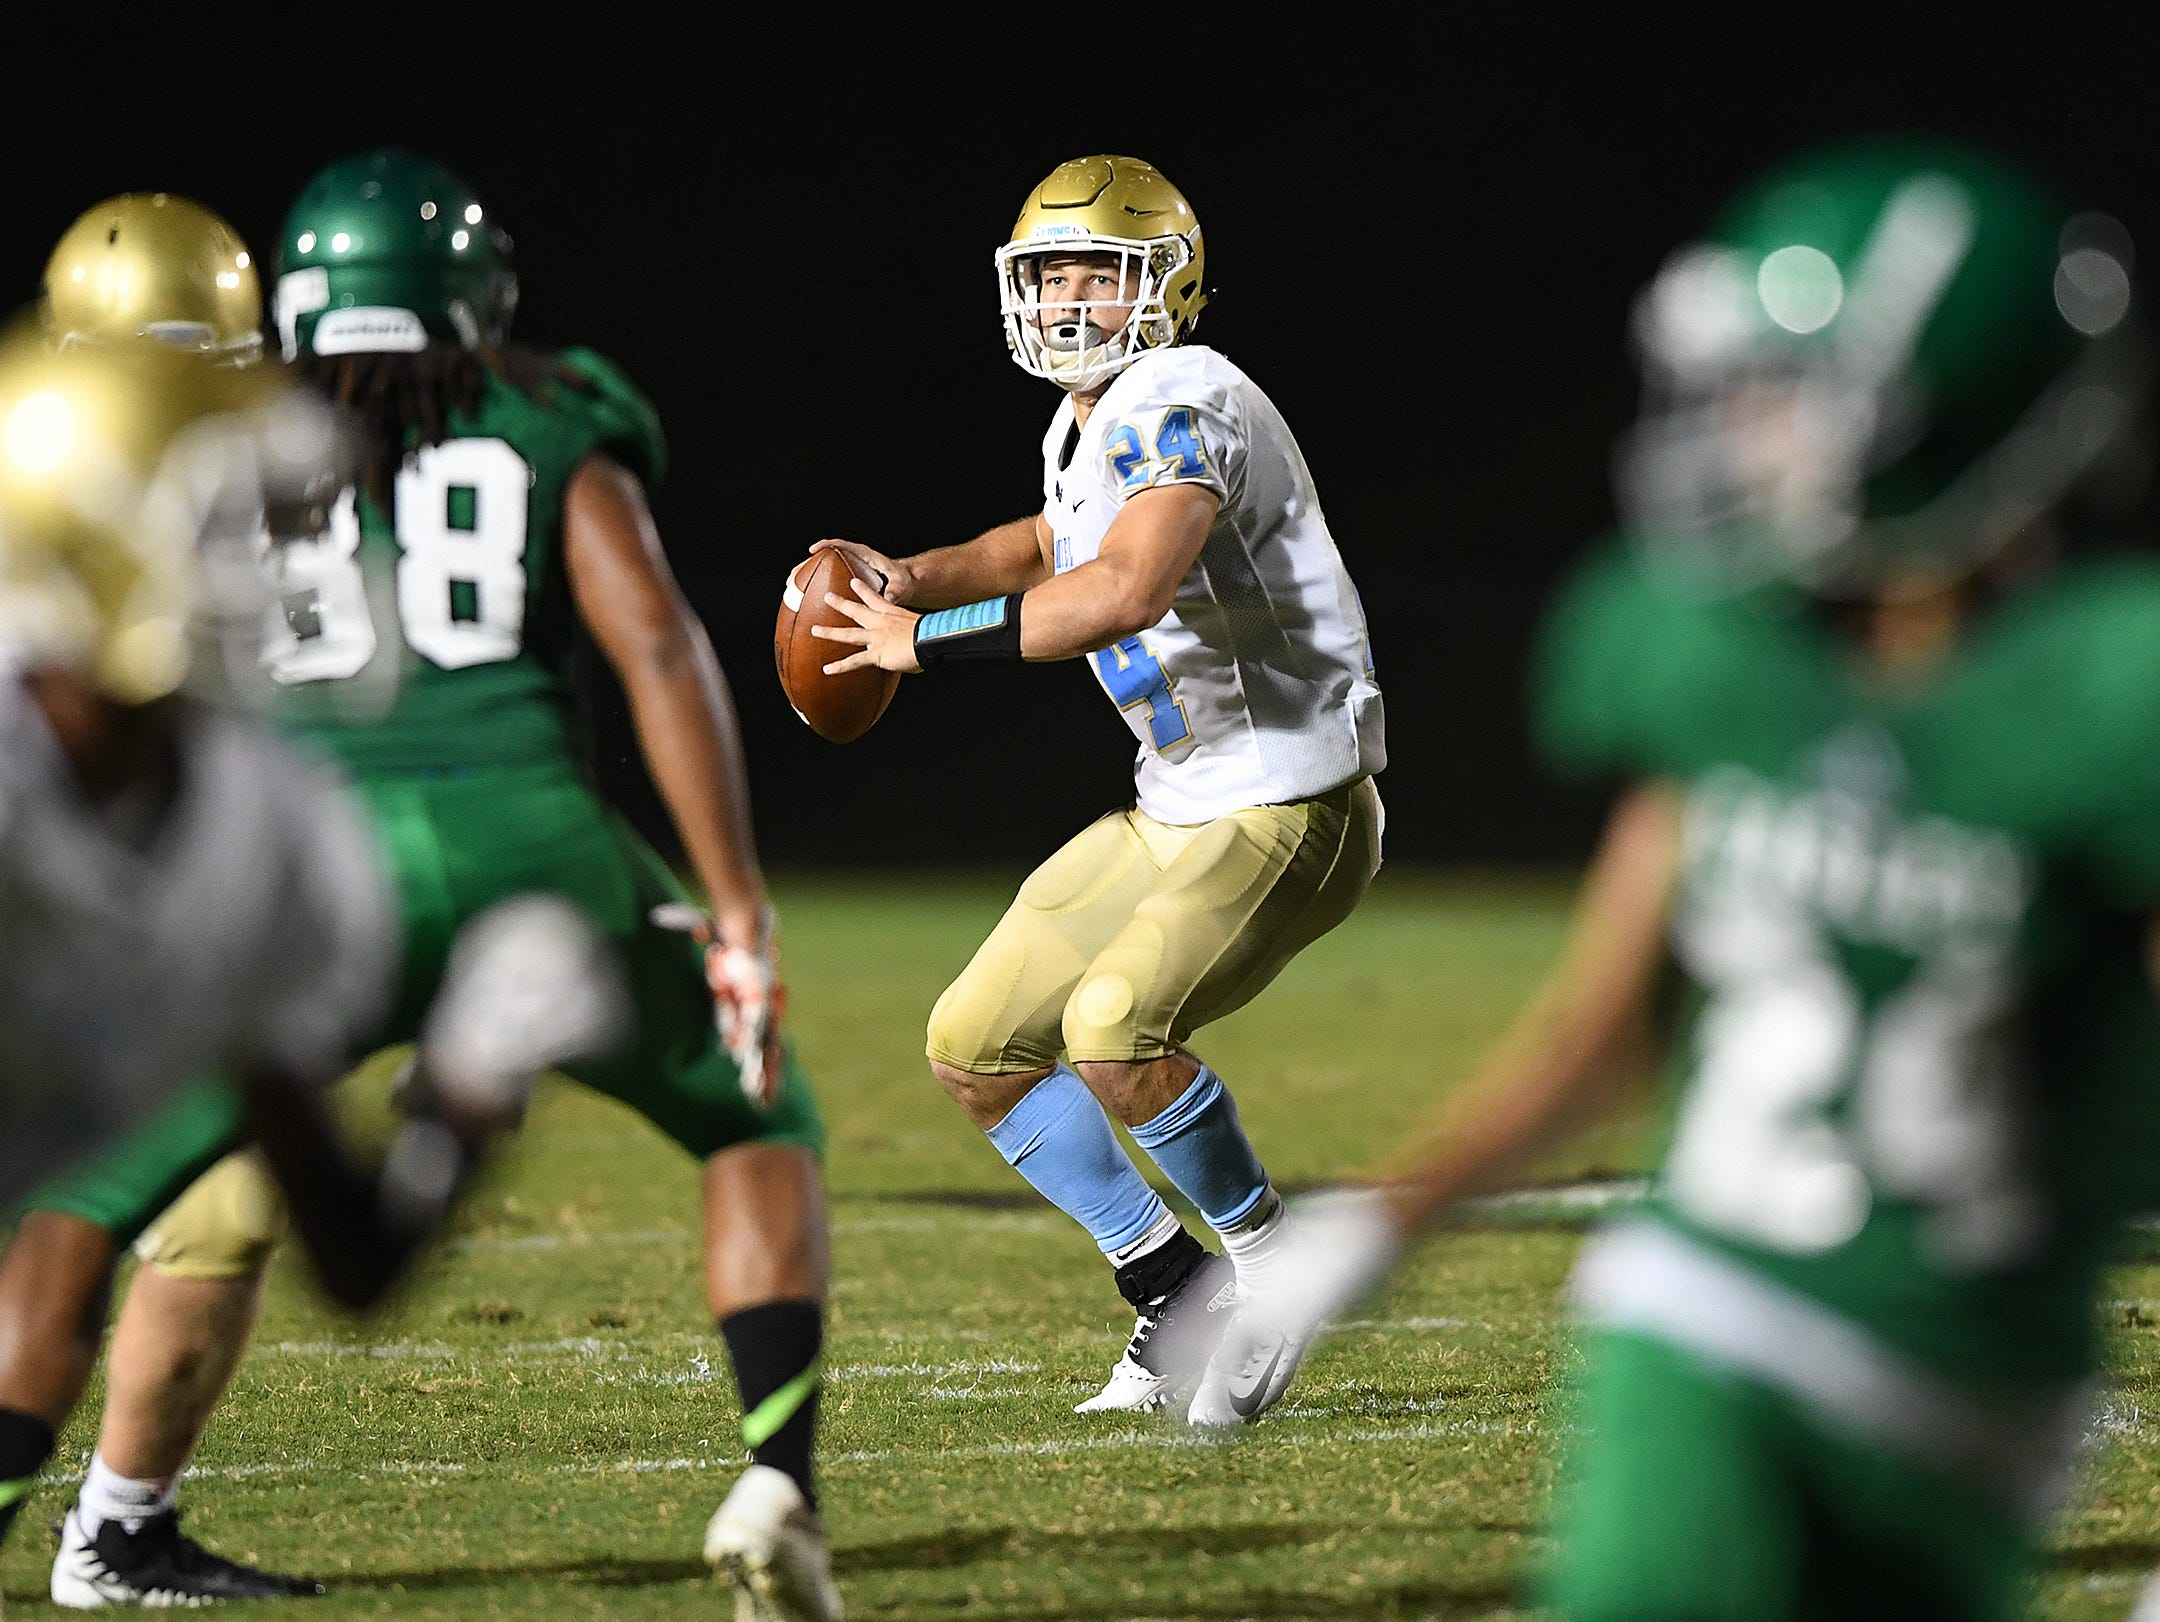 """Daniel quarterback Tyler Venables (24) plays against Easley Friday, August 24, 2018 at W.A. """"Bill"""" Carr Stadium in Easley."""